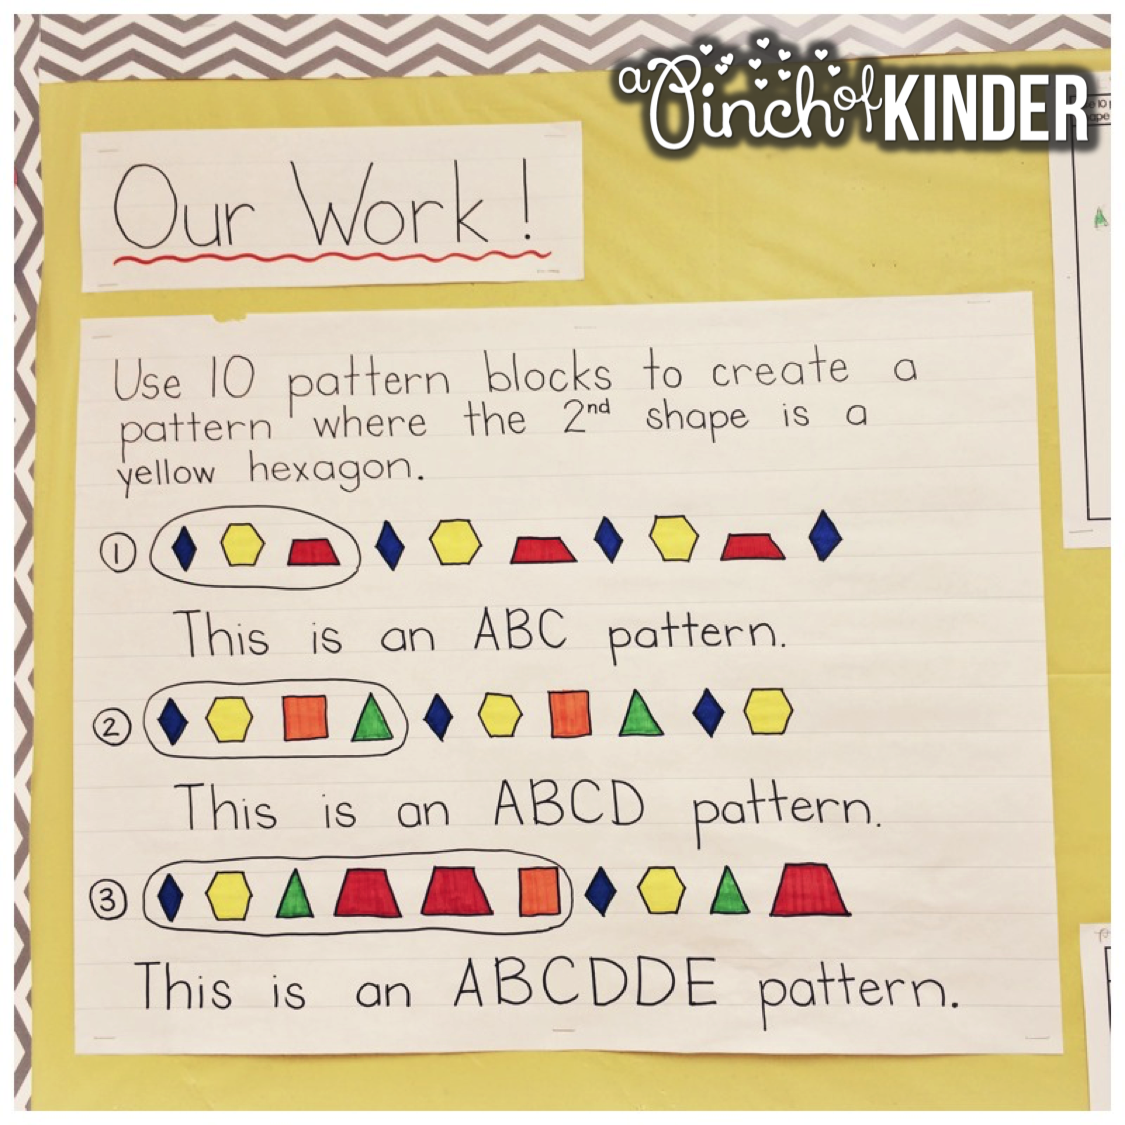 A Pinch Of Kinder Open Ended Patterning Question